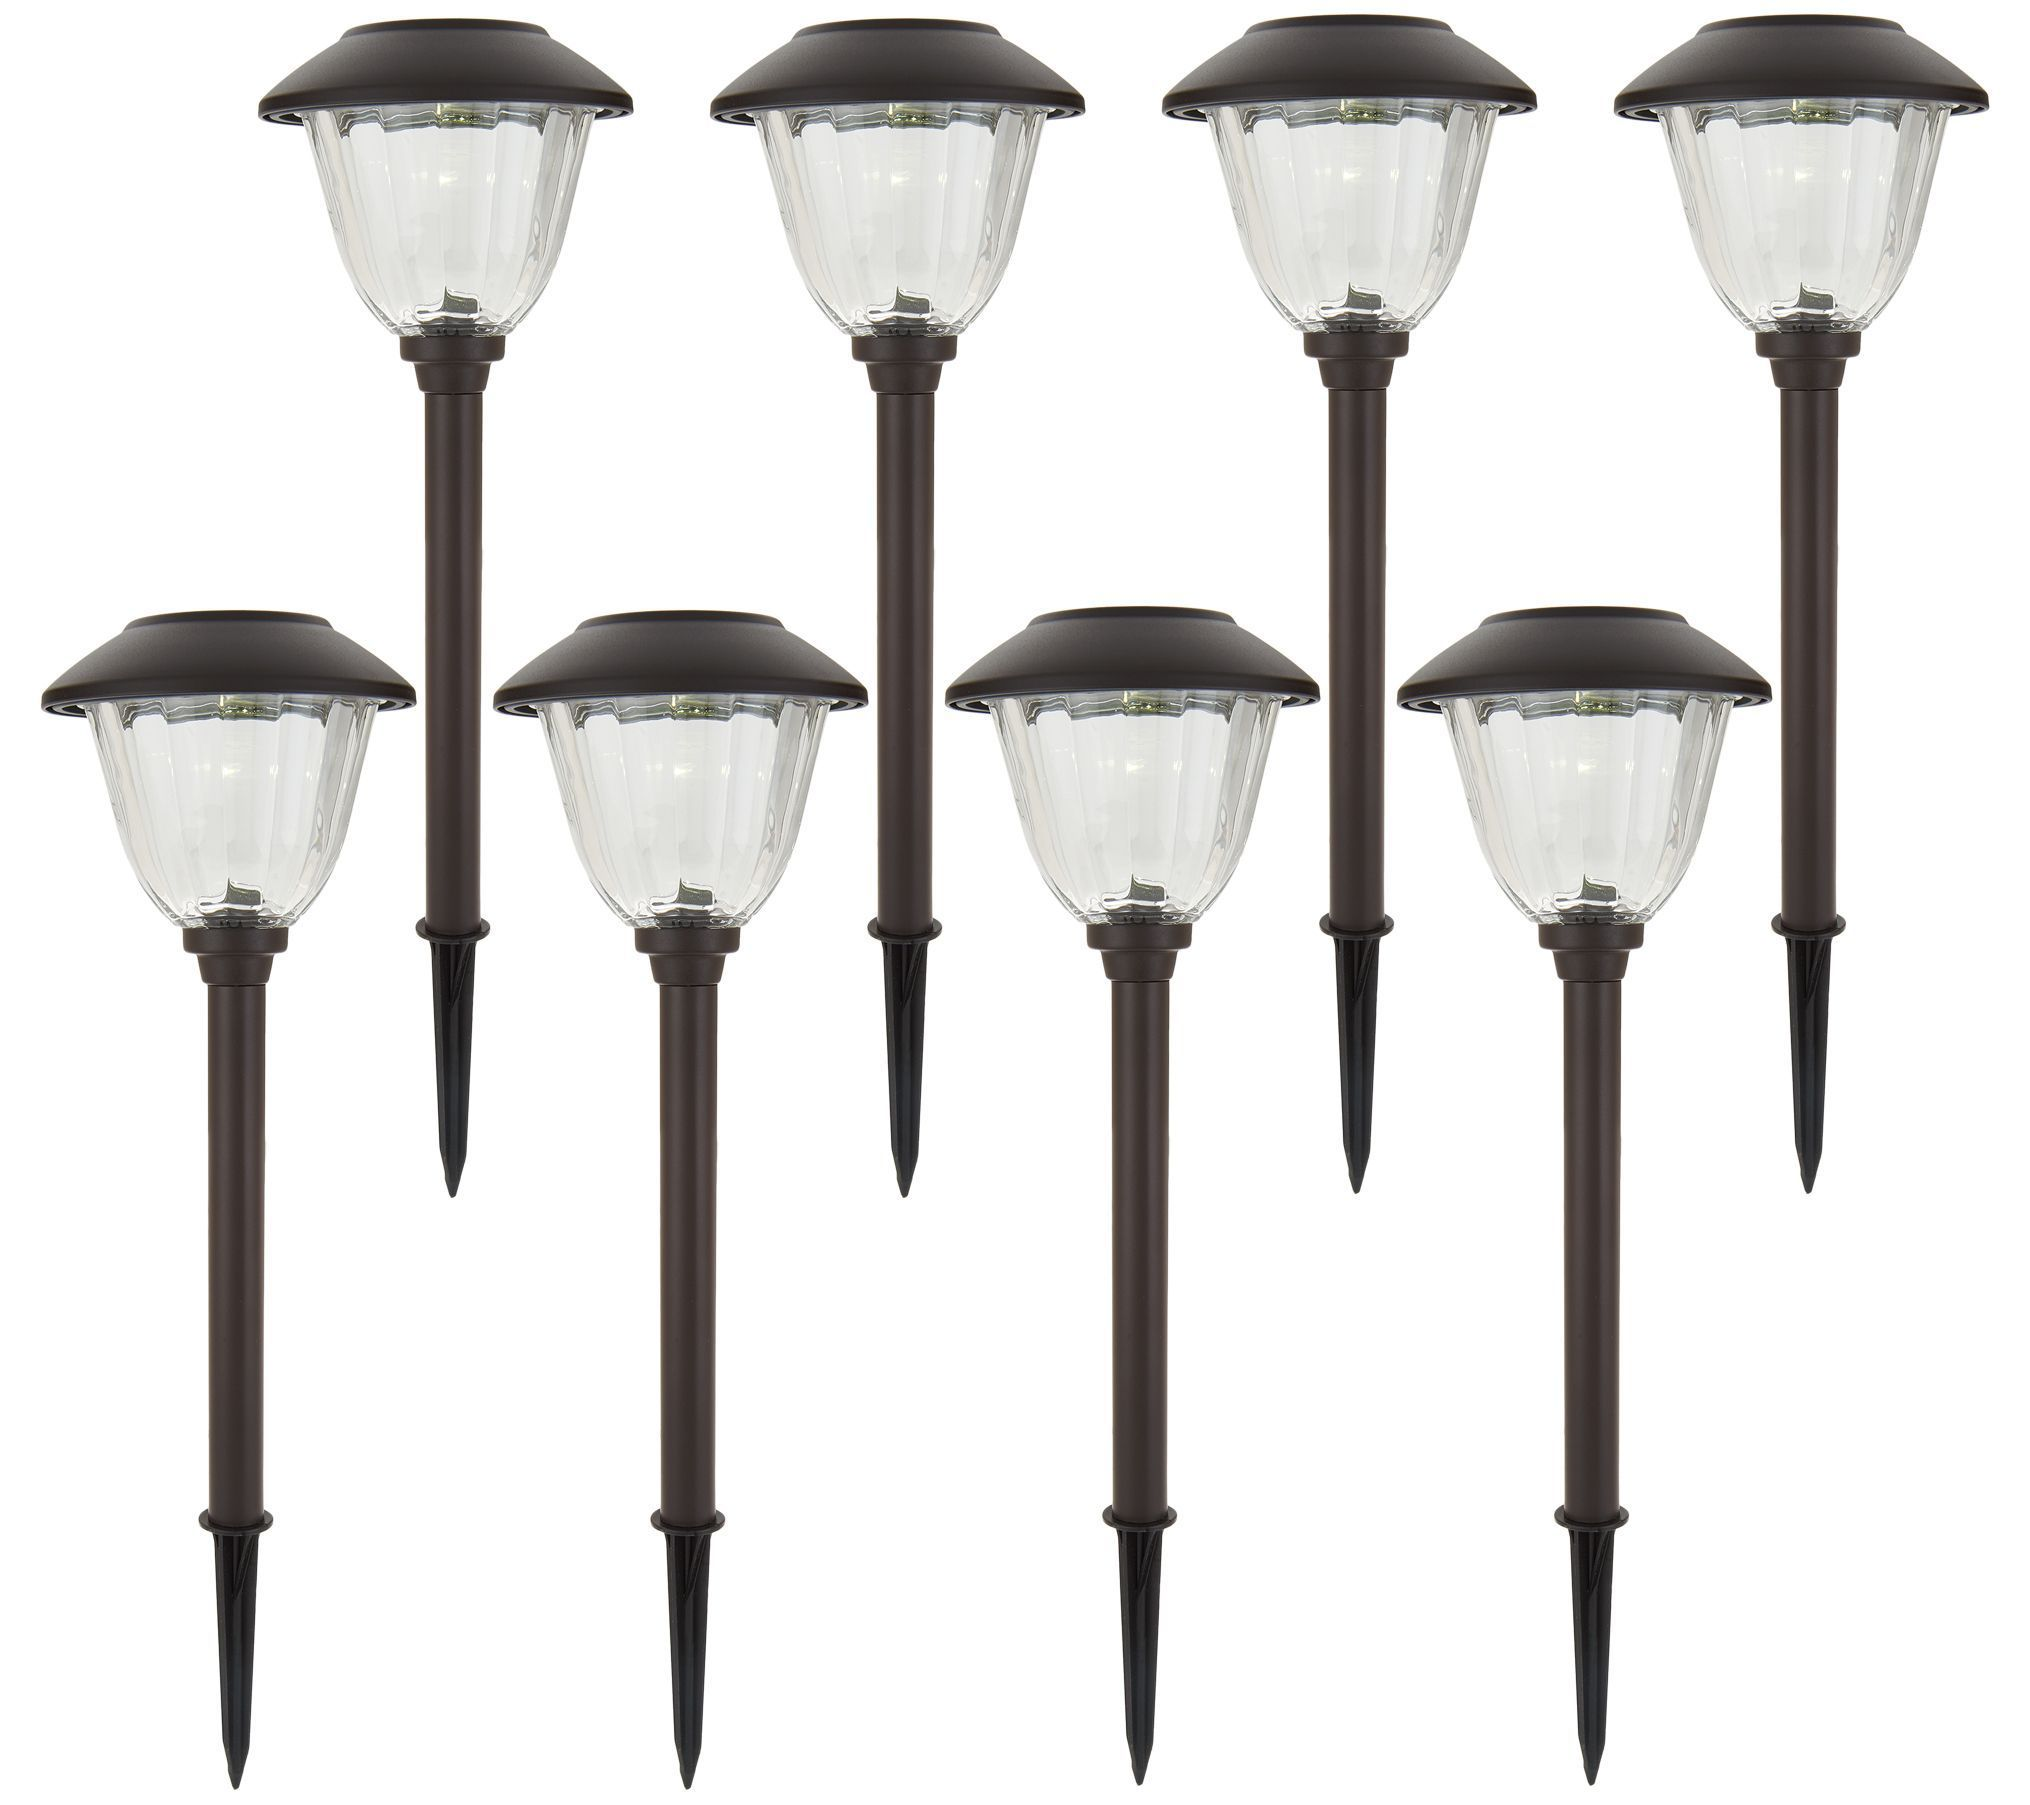 qvc outdoor lighting led outdoor energizer 8piece solar landscape light set page qvccom landscapegardeningawesome